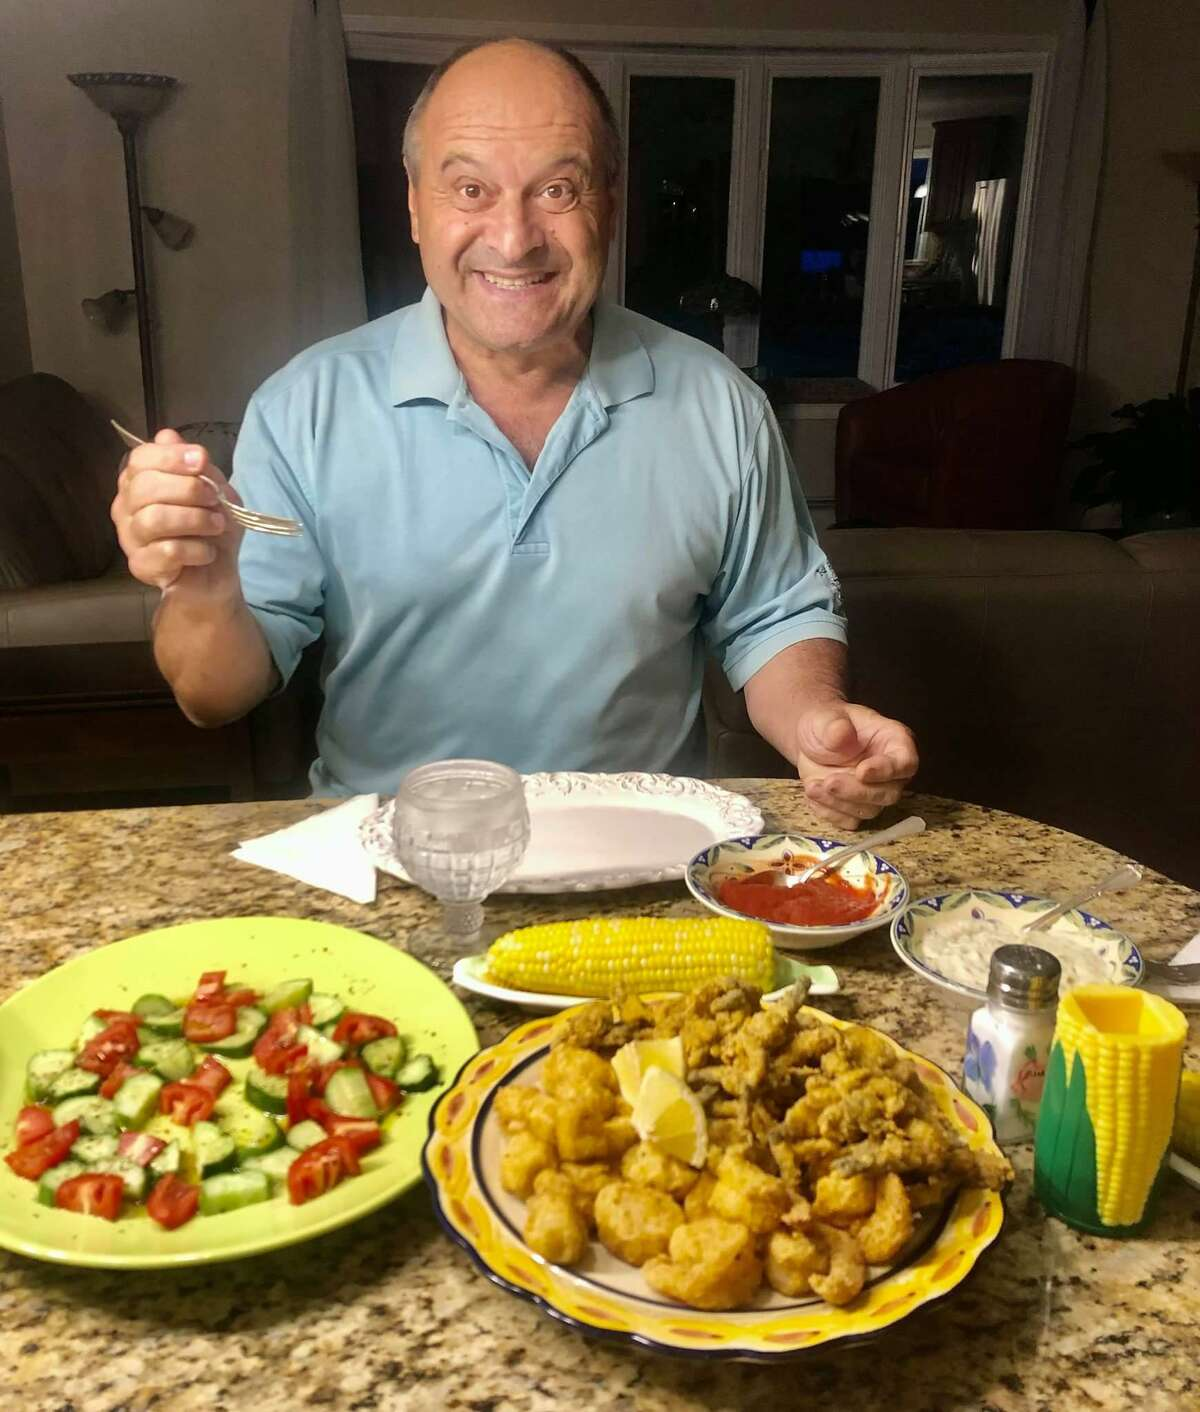 """All Pete Leonetti has to do is smile for the camera in front of his wife Karen's culinary delights and then, of course, indulge. Her Facebook posts of his meals five or so times a week have become a Facebook sensation, with people all over the country wondering, """"How does Pete stay so trim?"""" and """"Why can't my wife cook like that?"""" Here Pete is ready to dig into one of his favorites: a fried seafood platter with homemade tartar sauce, corn on the cob and cucumber and tomato salad."""